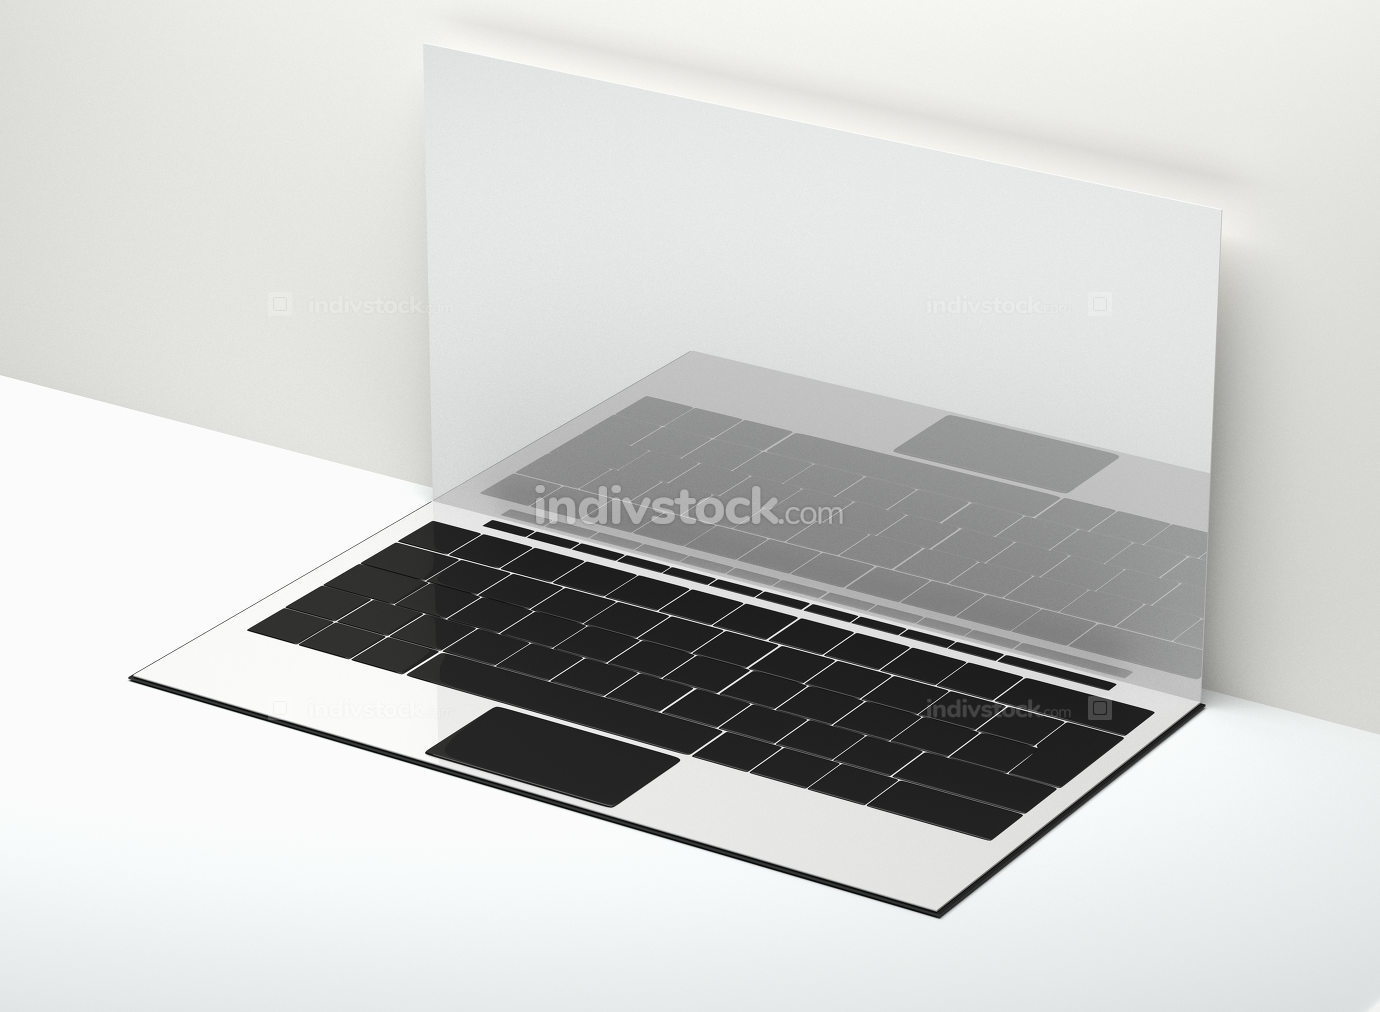 free download: computer notebook laptop blank screen 3d-illustration